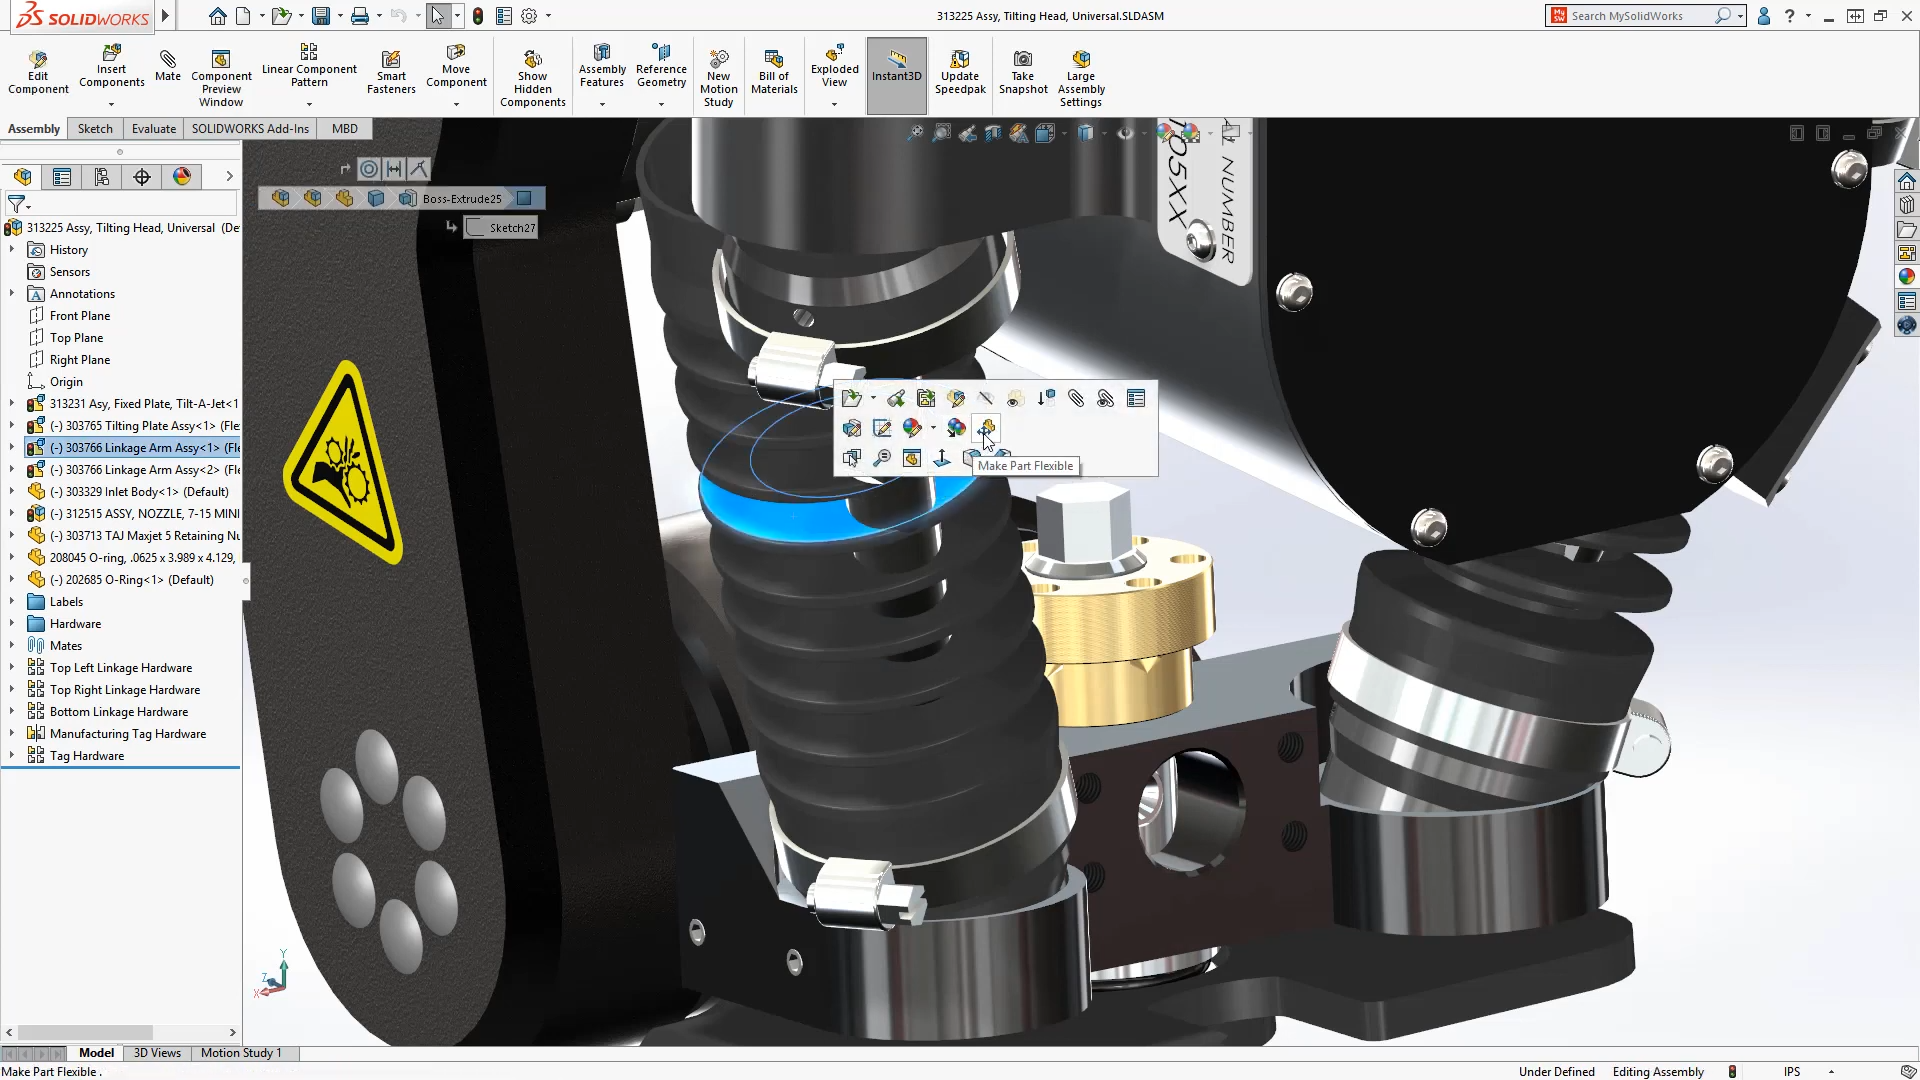 Detailing Mode and Flexible Parts Coming to SOLIDWORKS 2020